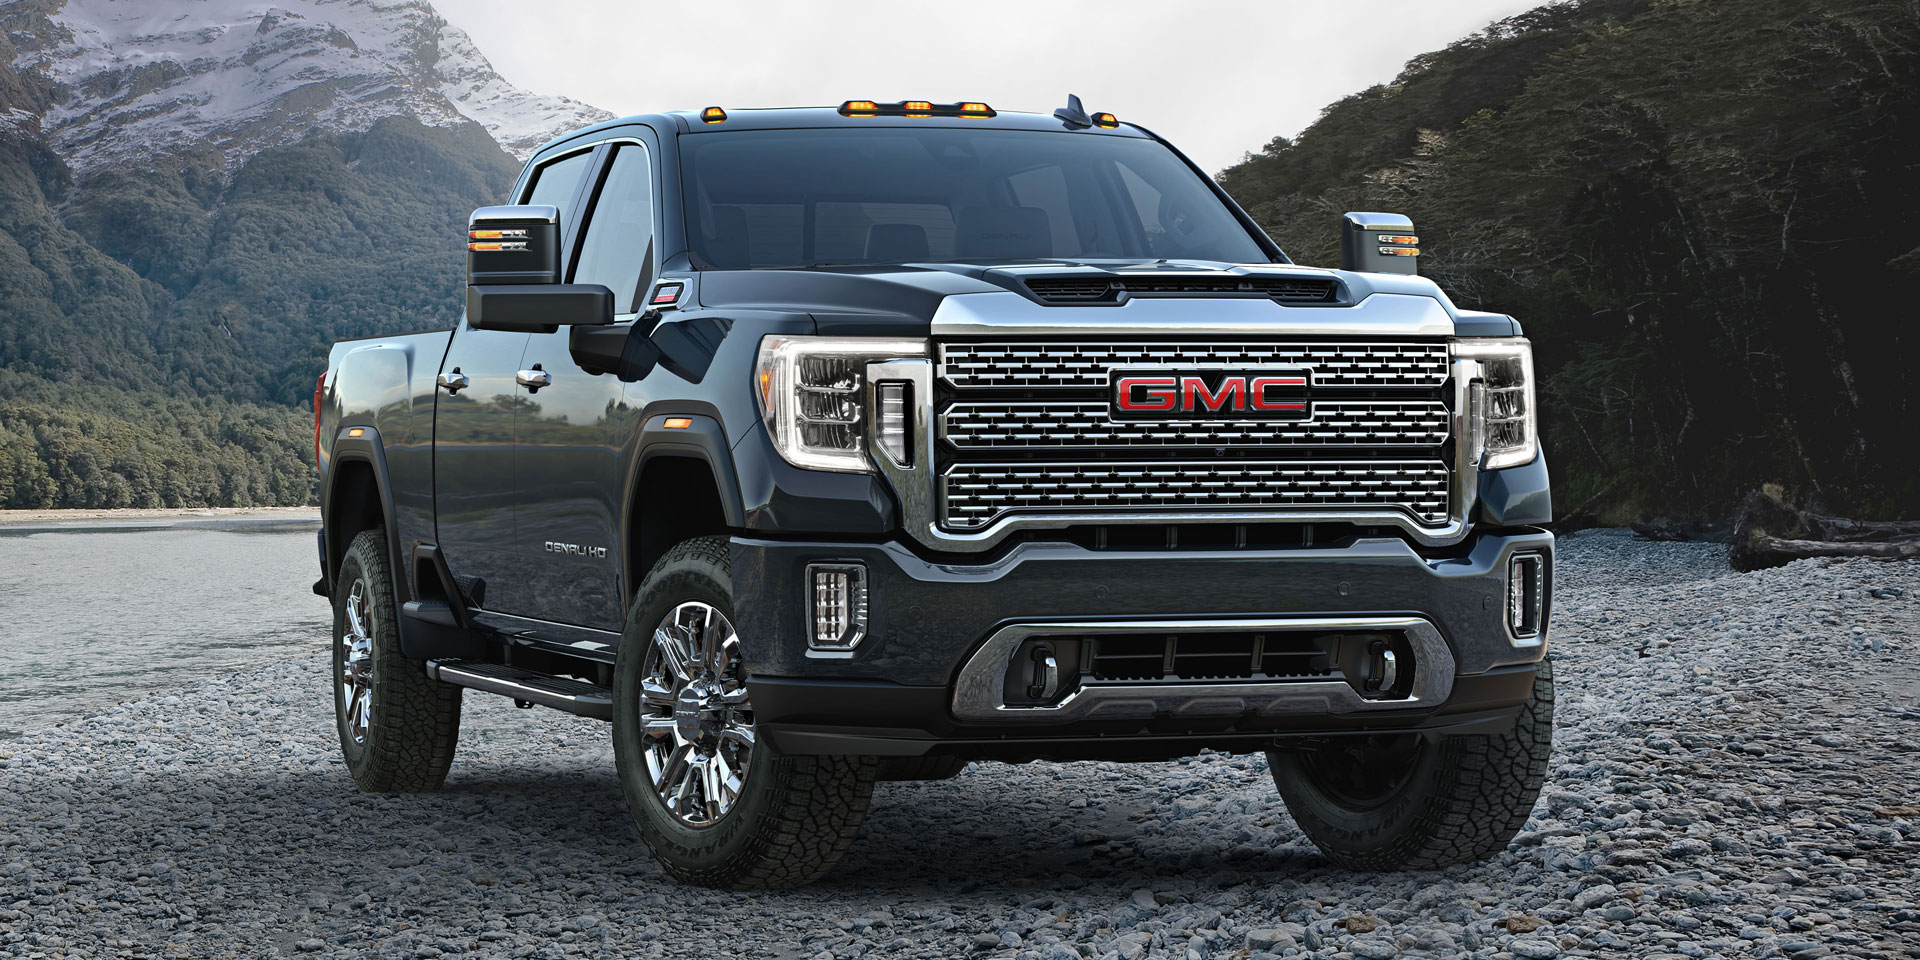 2020 - GMC - Sierra HD - Vehicles on Display | Chicago ...